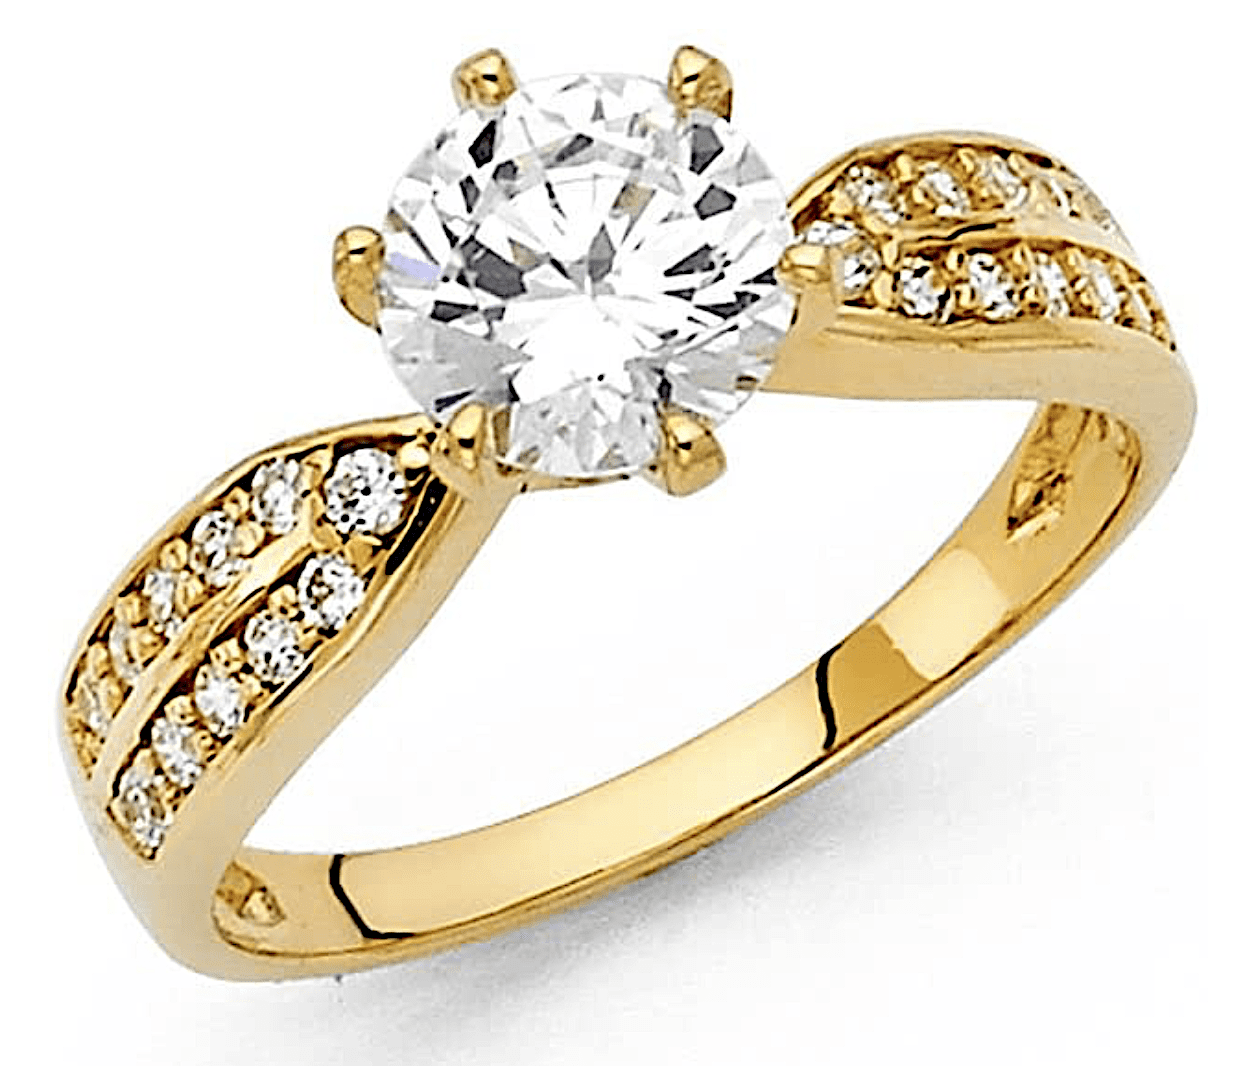 Excellent Shine Black Diamond Ring In Round Brilliant Cut Birthday /& Easter! Gift For Marriage